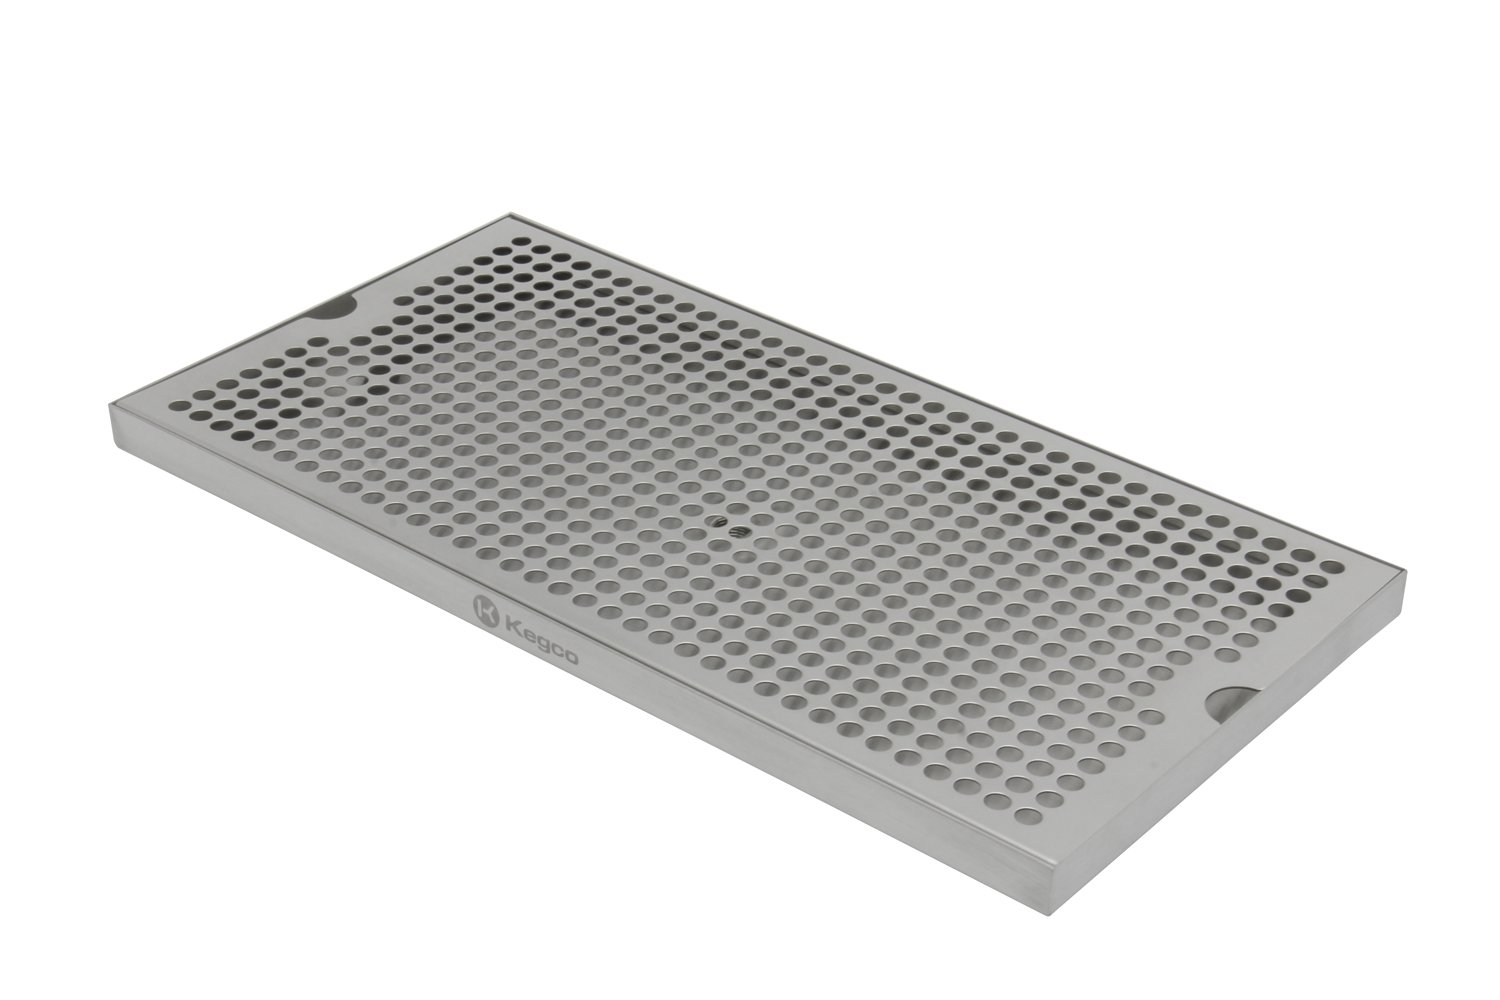 Kegco SESM-189D 18'' x 9'' Surface Mount Drip Tray with Drain by Kegco (Image #1)